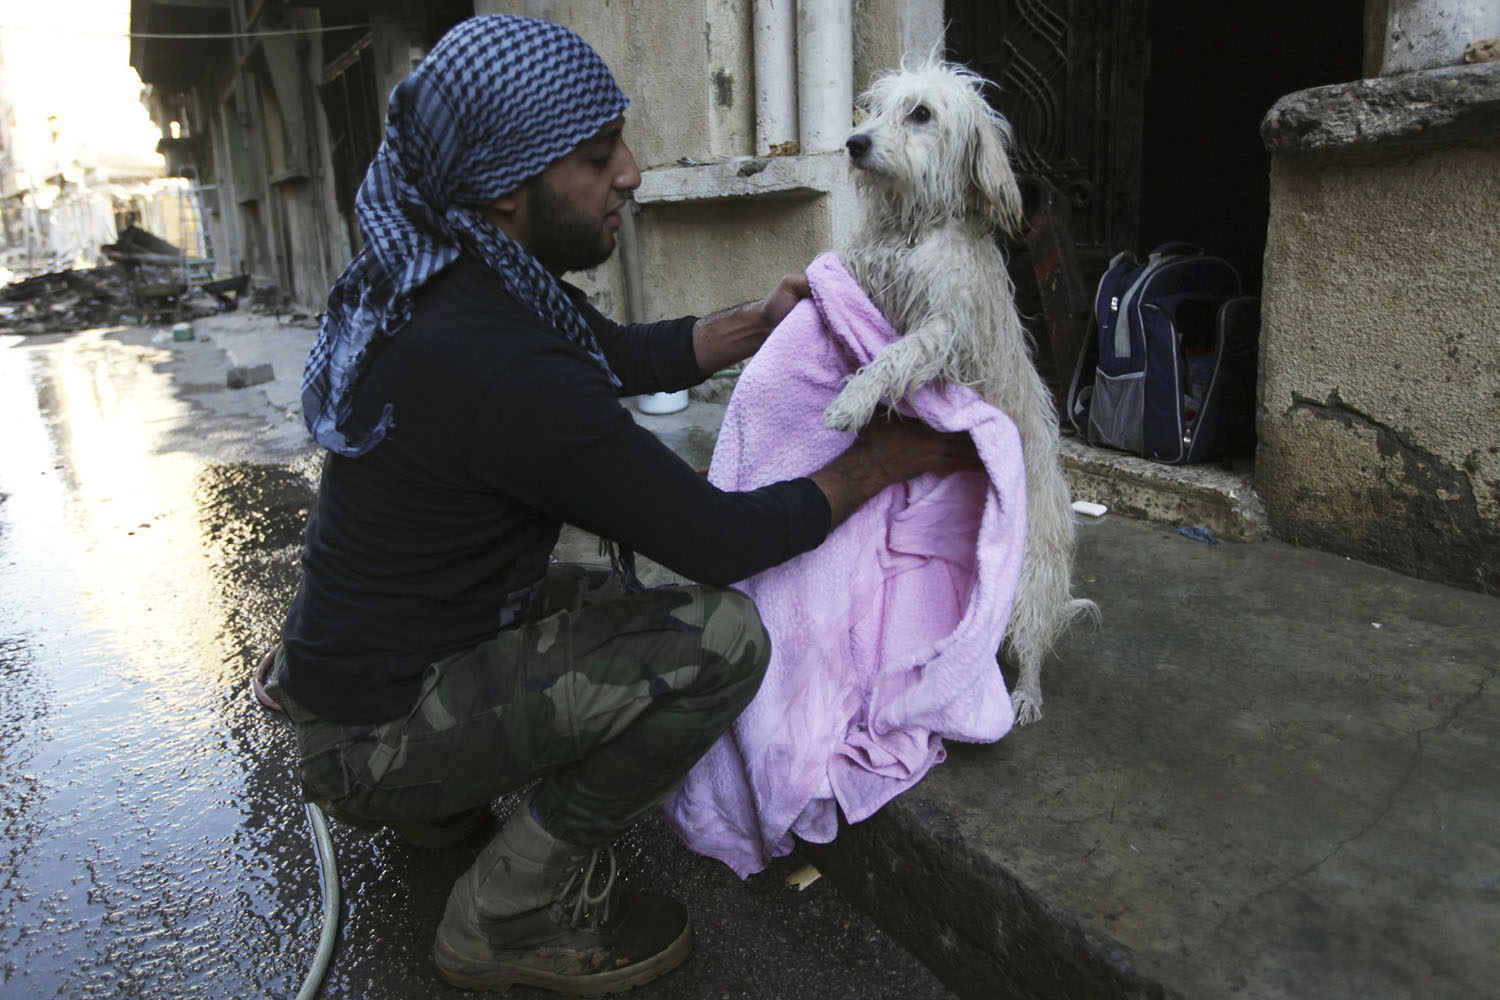 Oct. 6, 2013. A Free Syrian Army fighter dries a dog after giving it a wash in Deir al-Zor.